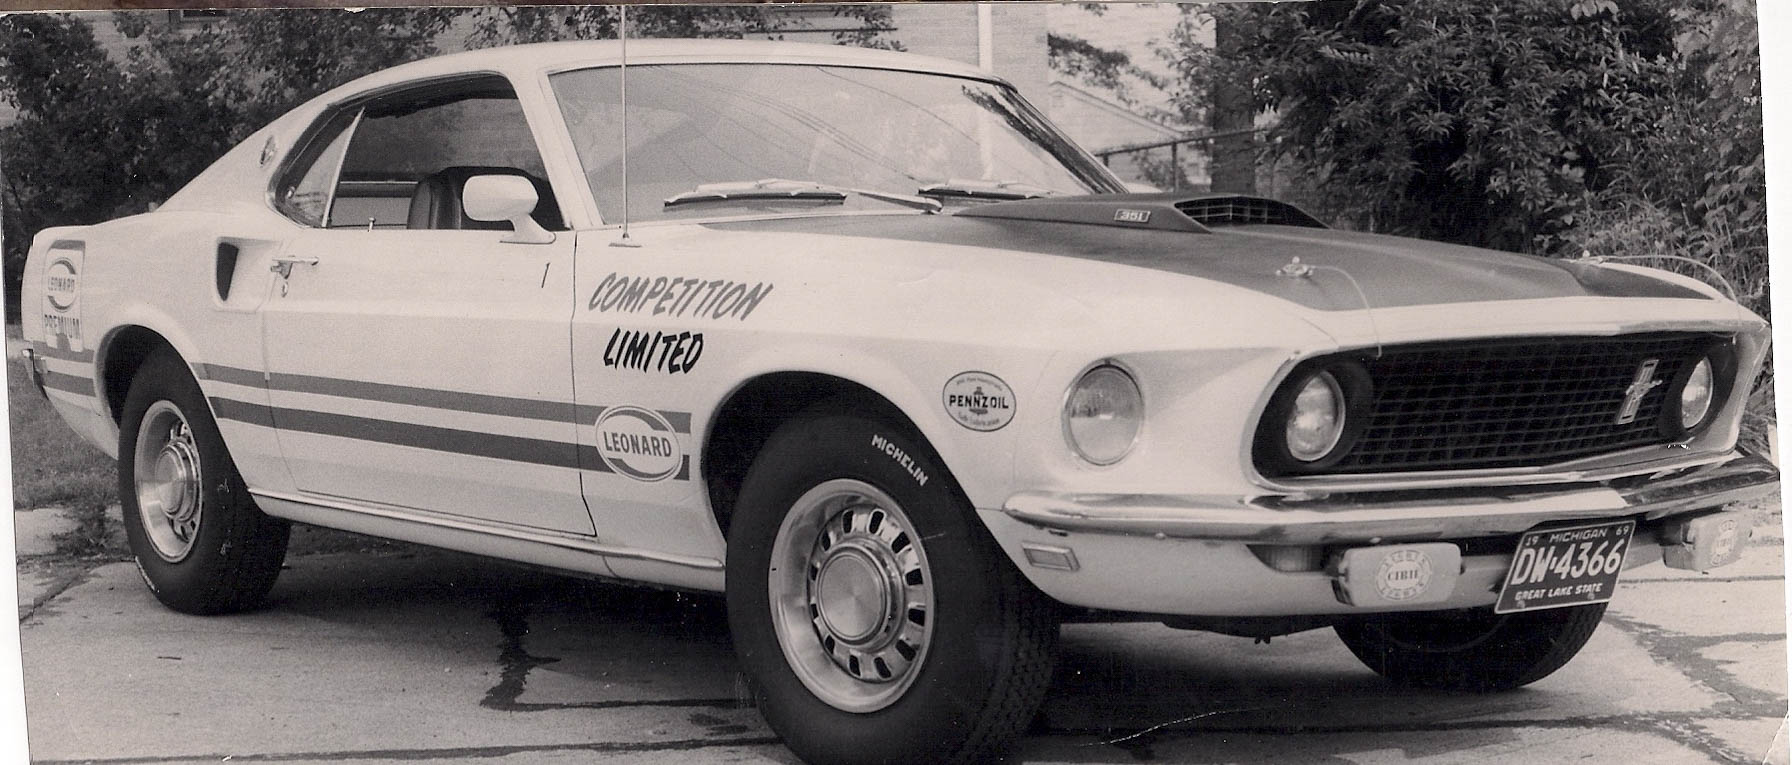 Ralph Beckman drove a Mach 1 for the Dearborn-based Competition Limited team. The Leonard sticker indicated sponsorship from a regional oil refiner and gas station chain.